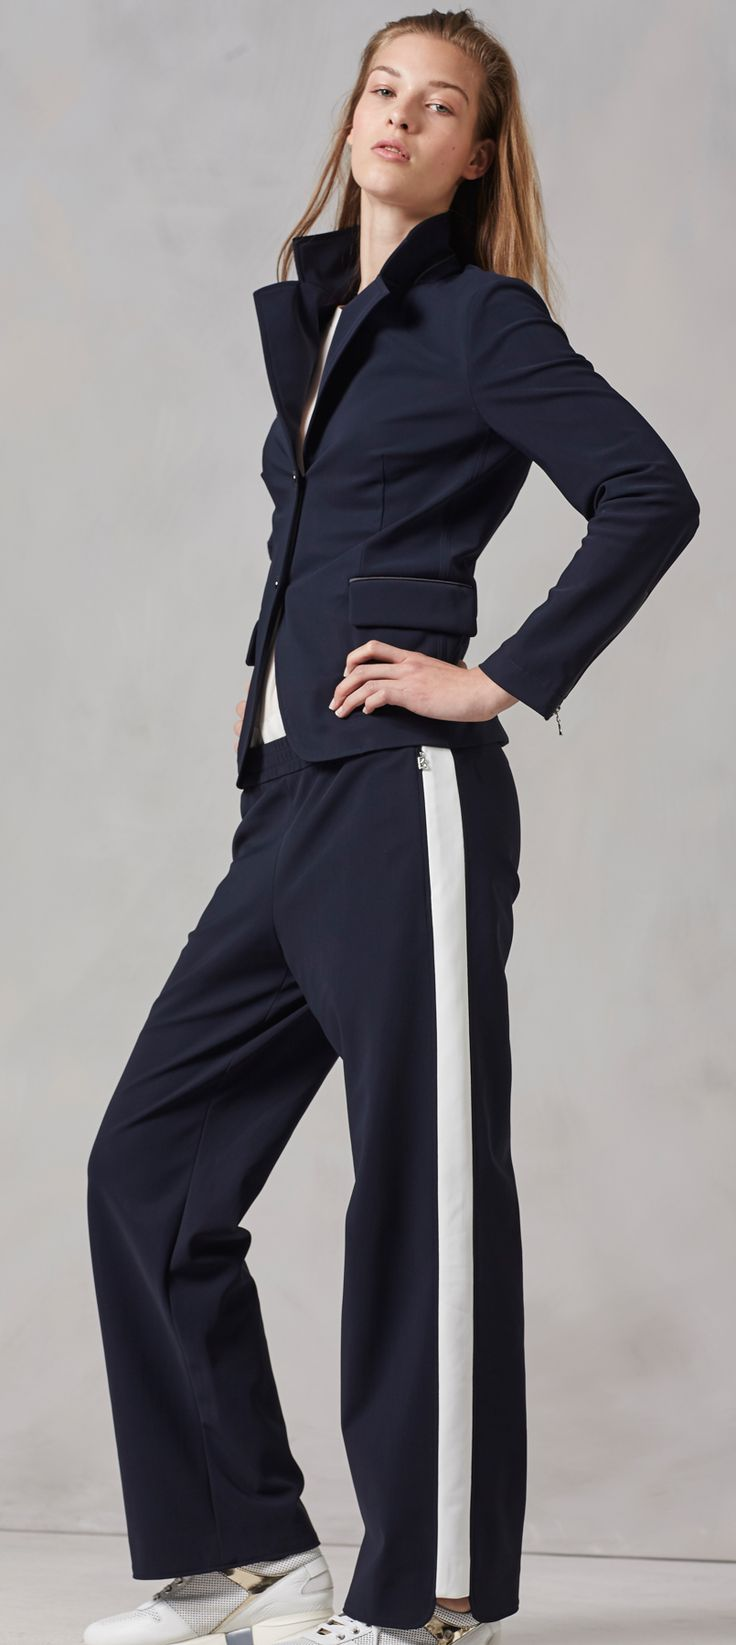 Office-chic has never looked this sporty – these track pants have the cut and elegant feel of classic slacks, but the comfort-level and mobility of athletic wear. The smart, slimming racing stripe down the side gives the wearer an extra sporty look that's sure to stand out.